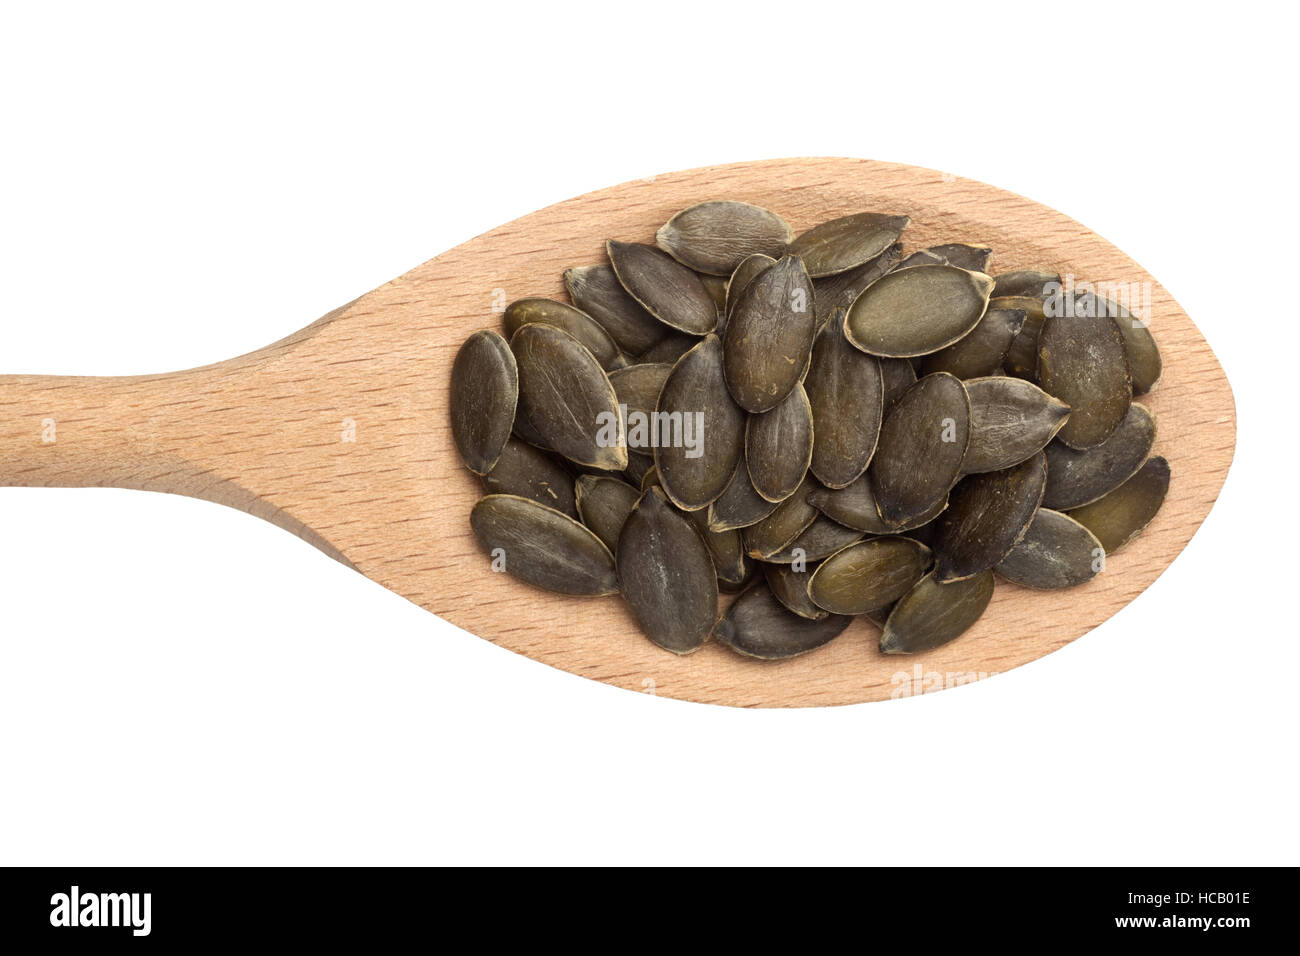 Pumpkin seeds in a wooden spoon isolated on white background - Stock Image